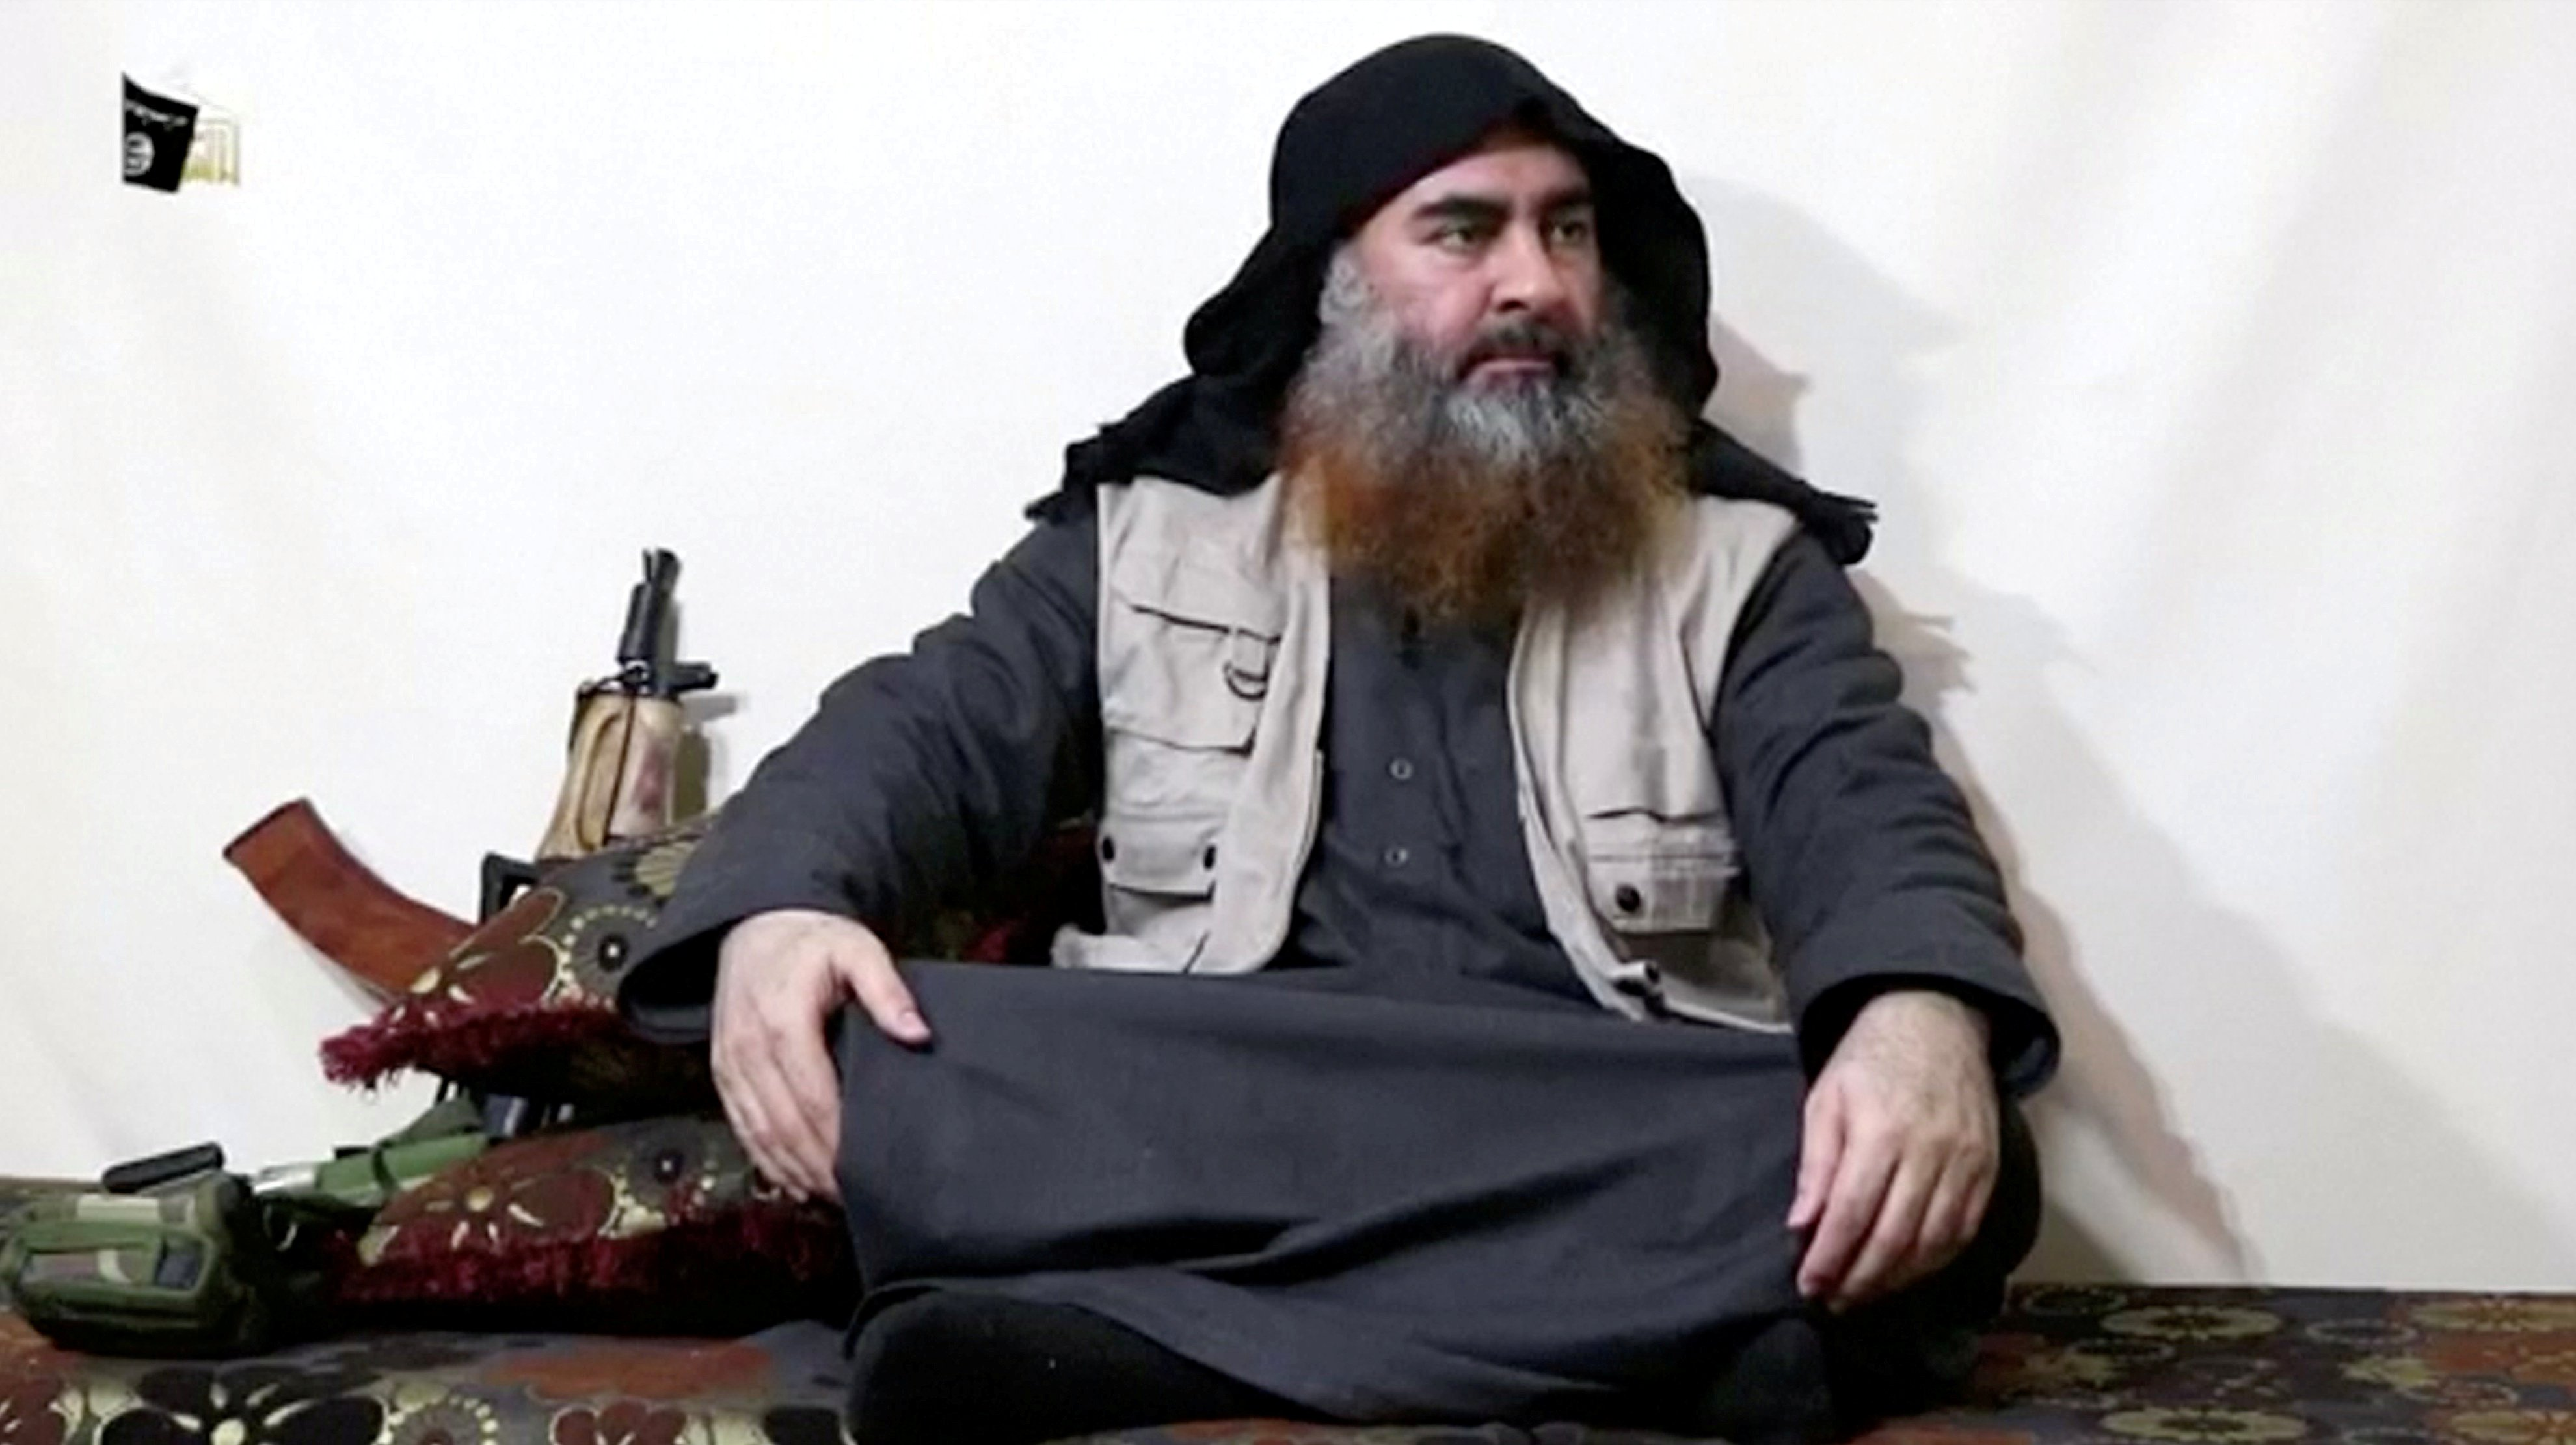 A bearded man with Islamic State leader Abu Bakr al-Baghdadi's appearance speaks in this screen grab taken from video released on April 29, 2019. (Islamic State Group/Al Furqan Media Network/Reuters TV via REUTERS)